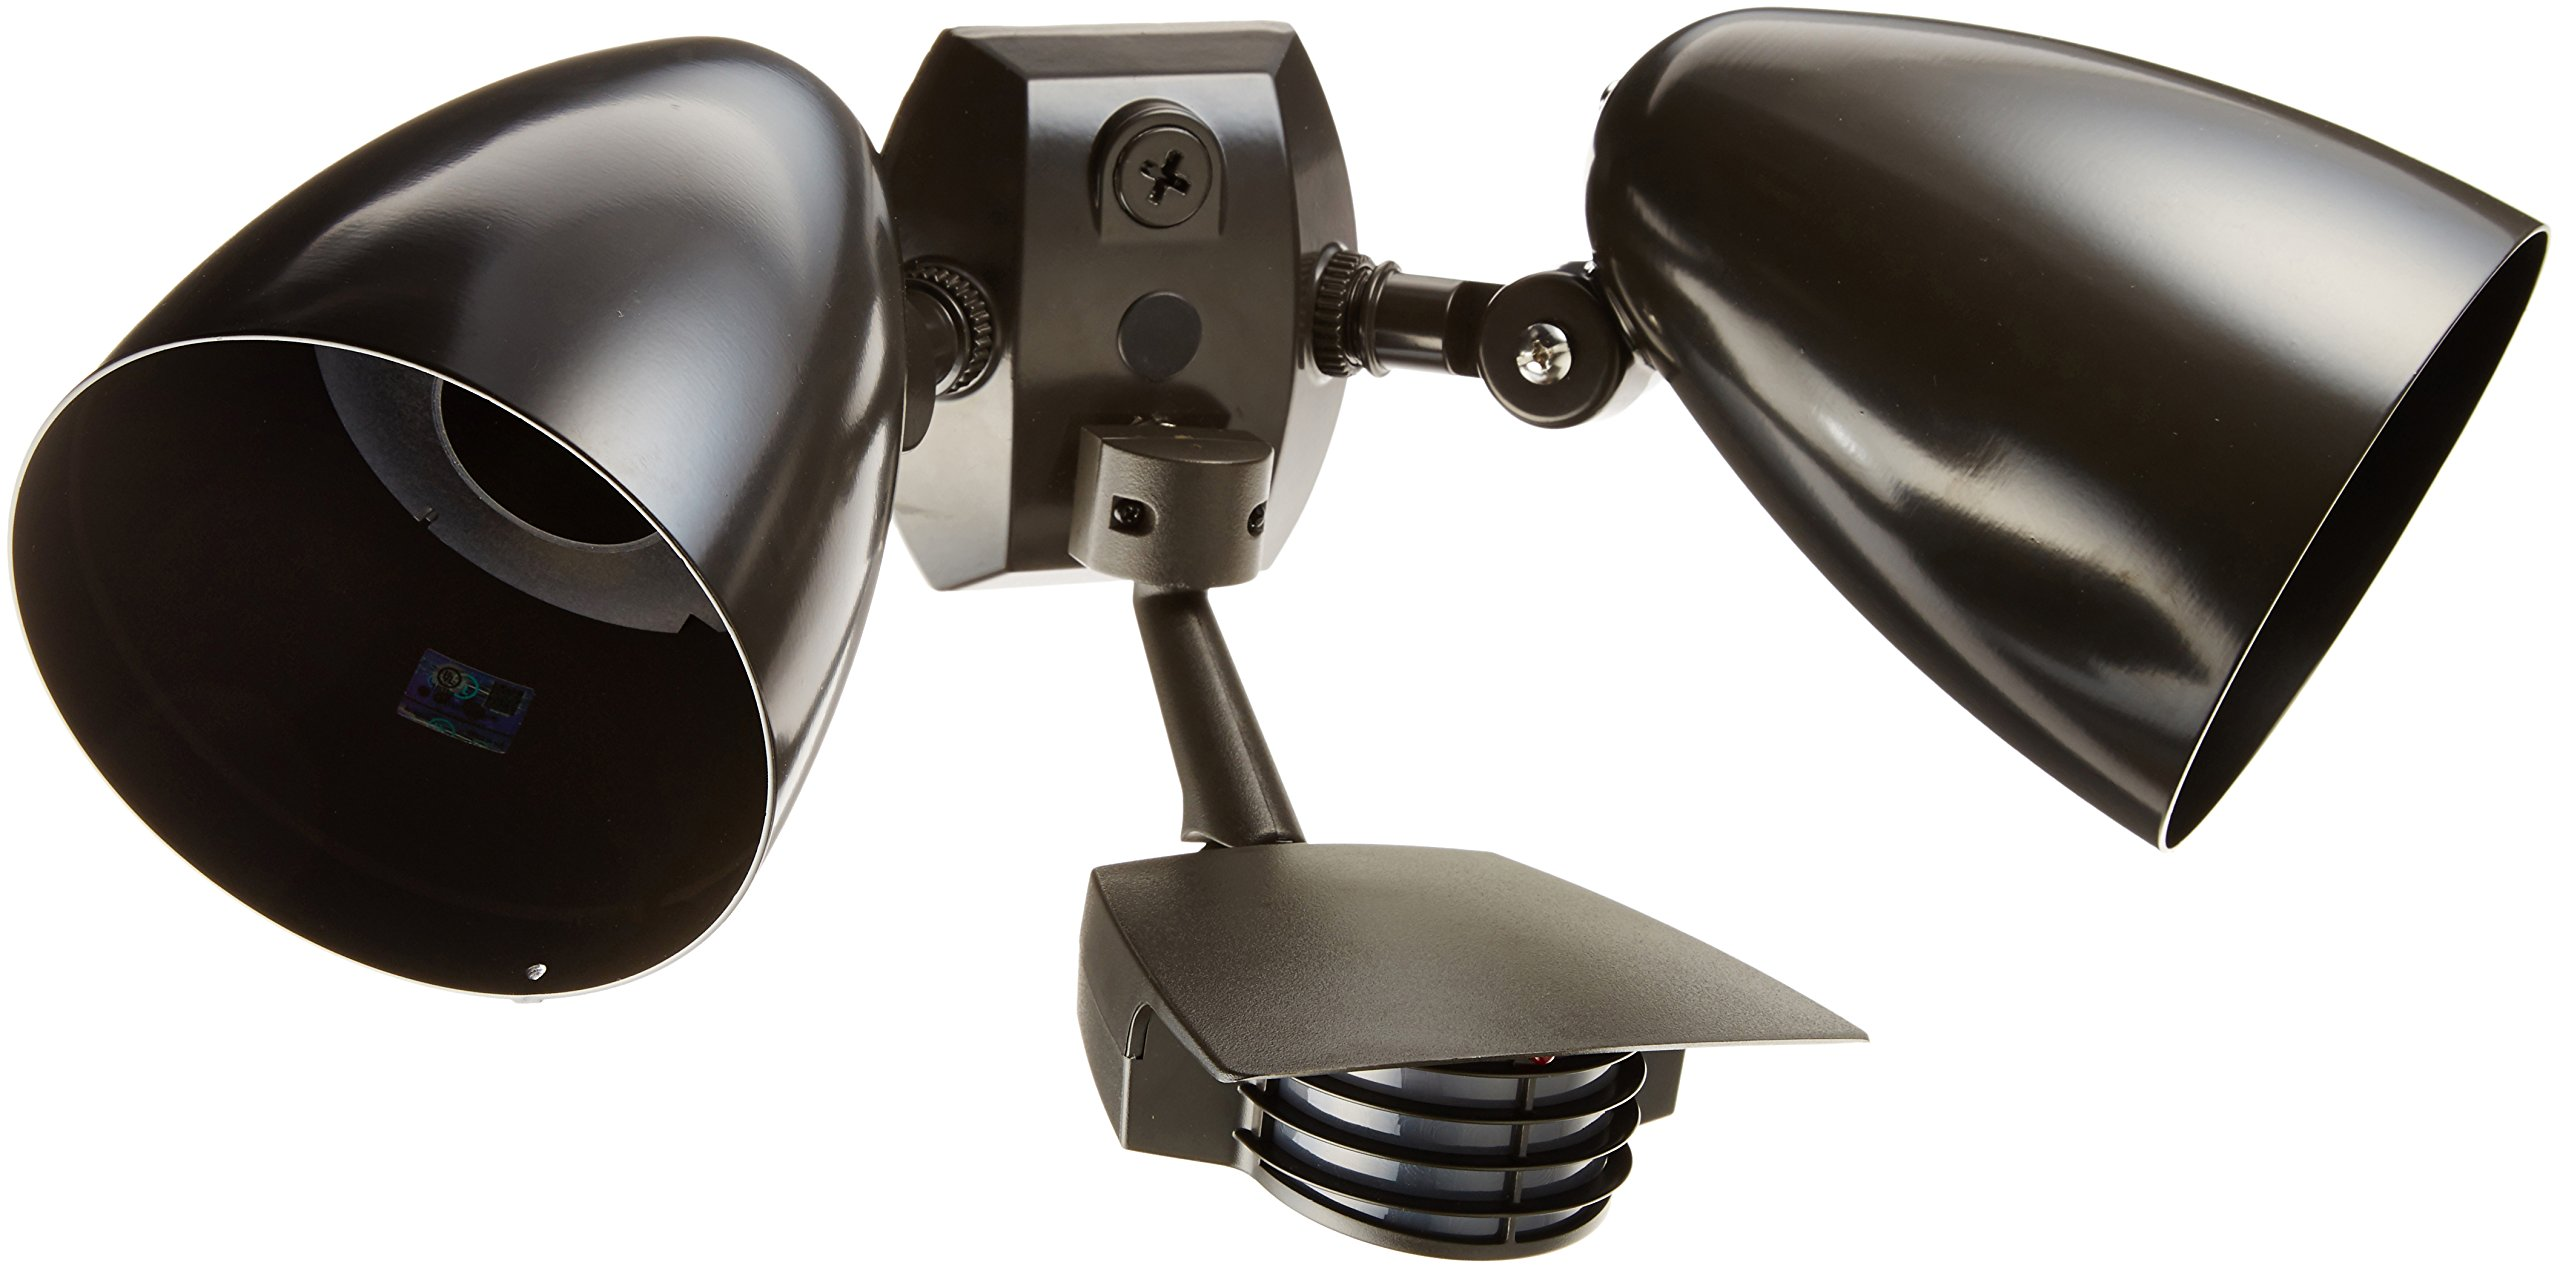 RAB Lighting STL200HB Stealth 200 Sensor with Twin Precision Die Cast HB101 Bullet Floods, Aluminum, 200 Degrees View Detection, 1000W Power, 120V, Bronze Color